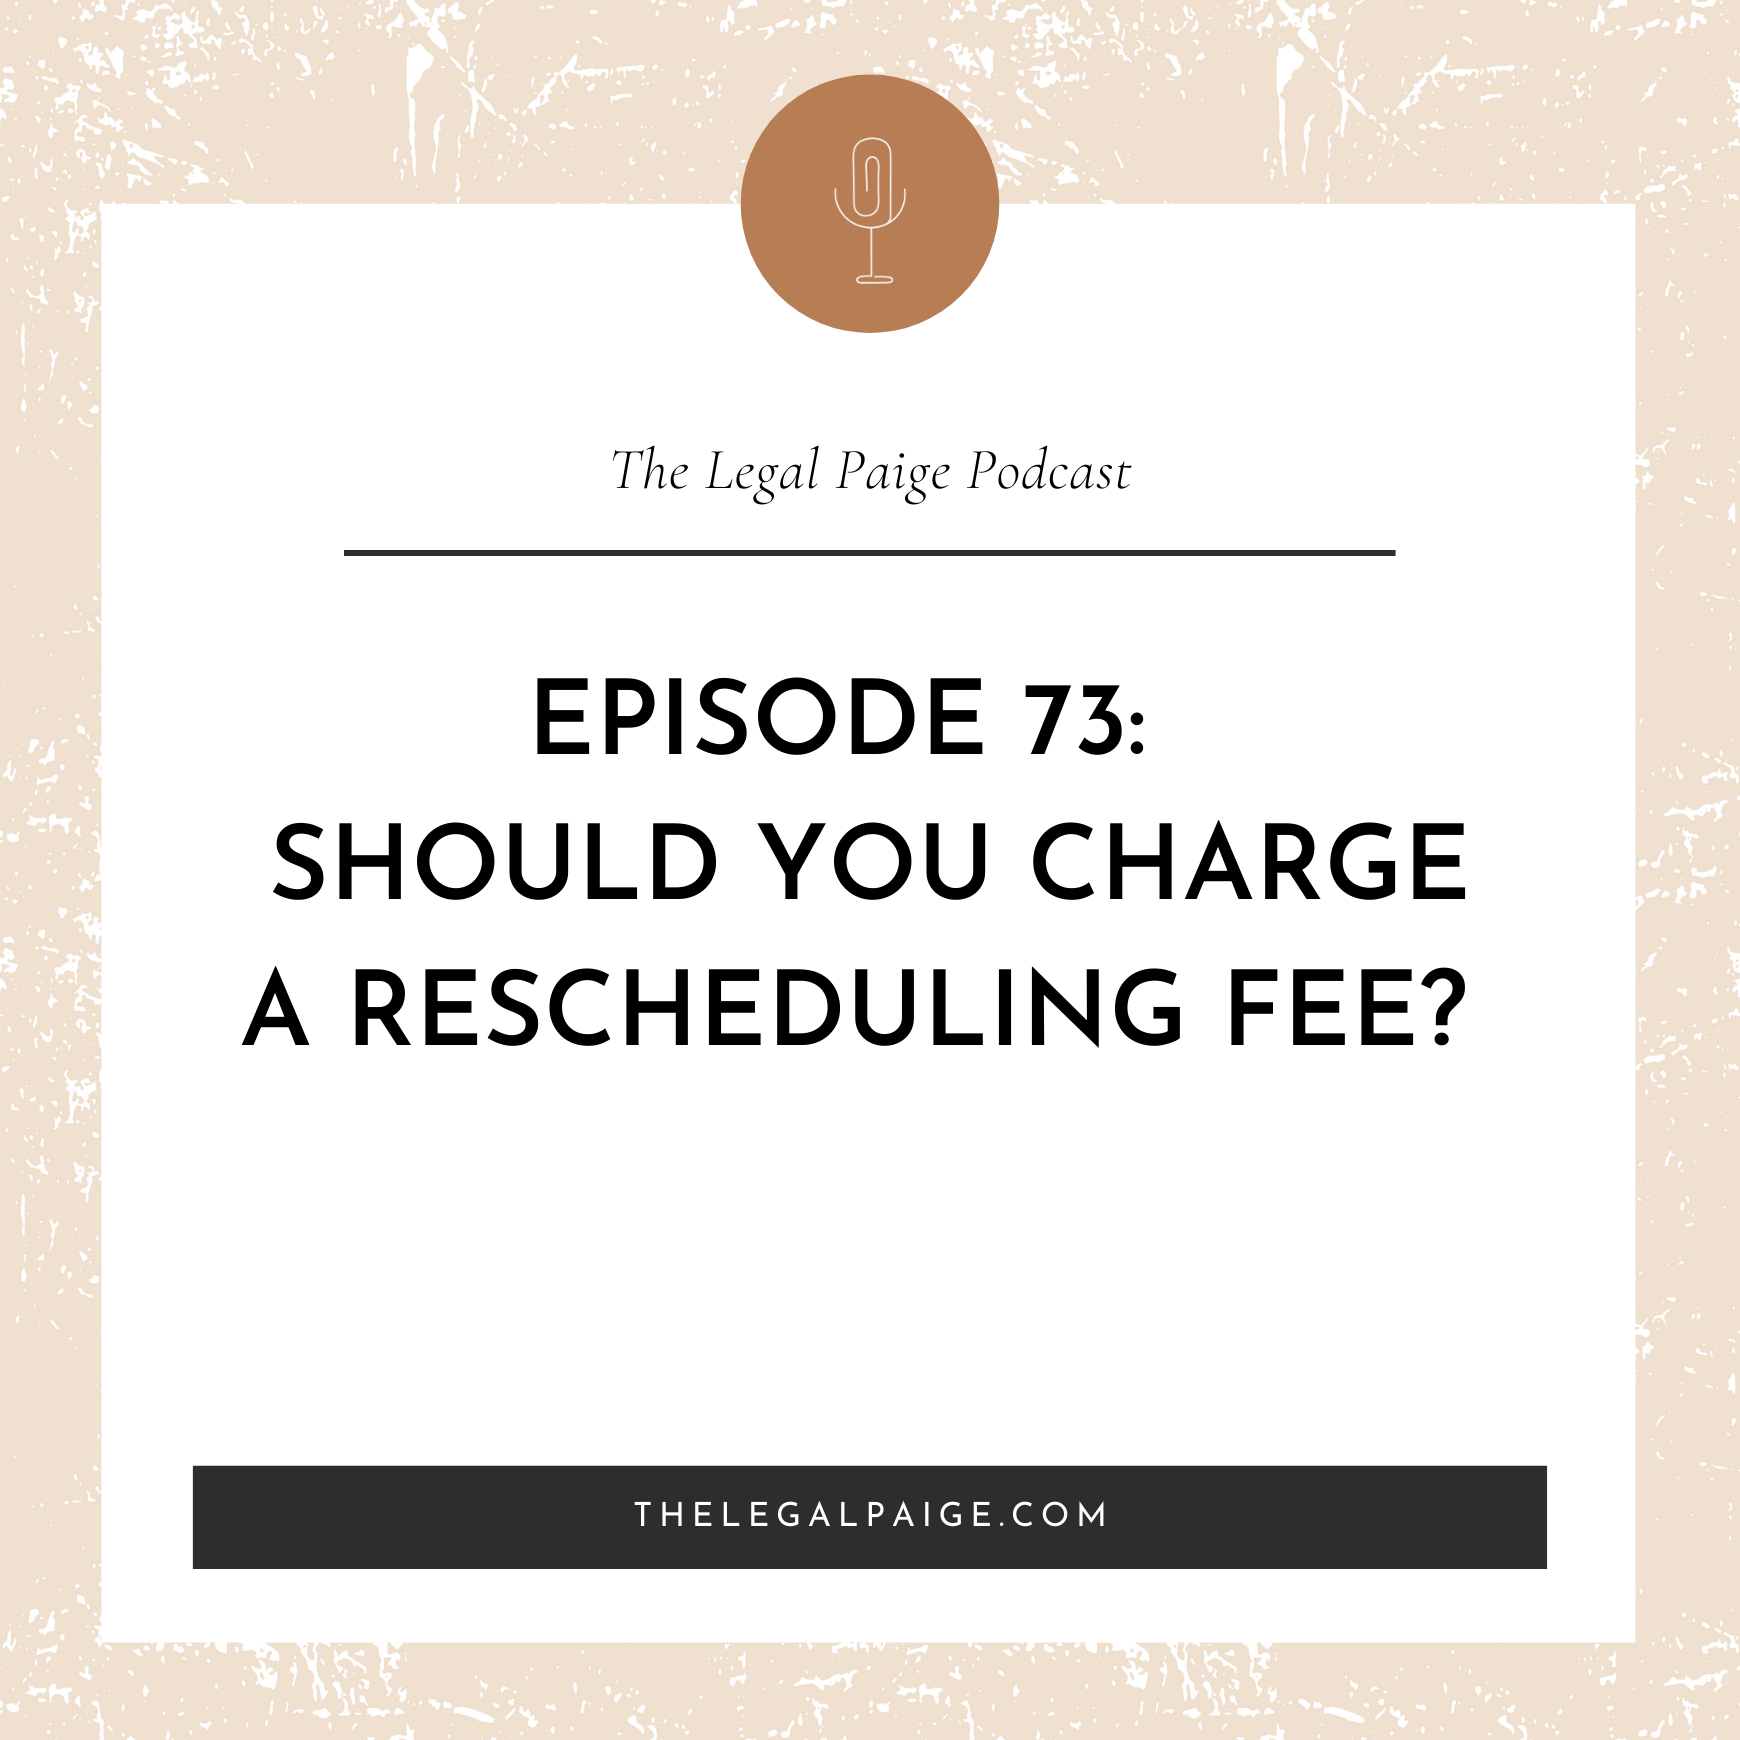 Episode 73: Should You Charge A Rescheduling Fee?